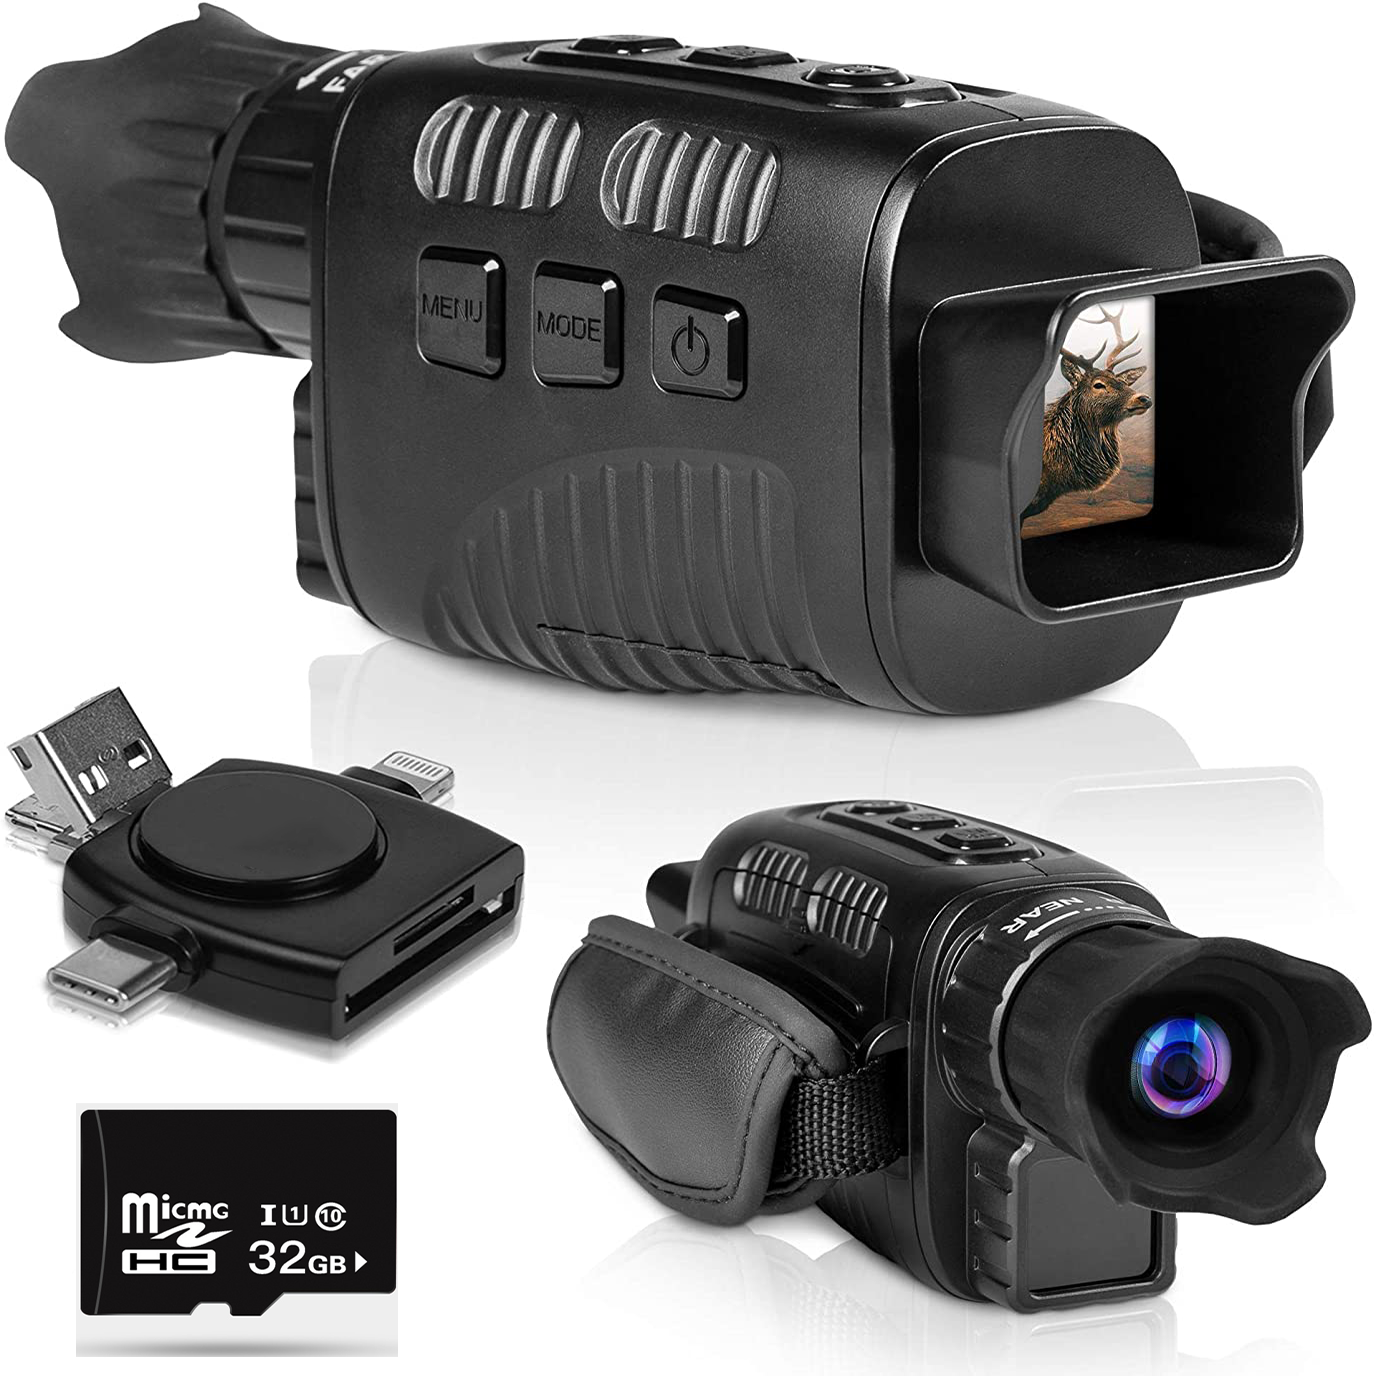 Night Vision Monocular Record Video Night Vision Scope 1 5 Inch LCD Display Water Resistent Goggles Playback Funtion for Outdoor